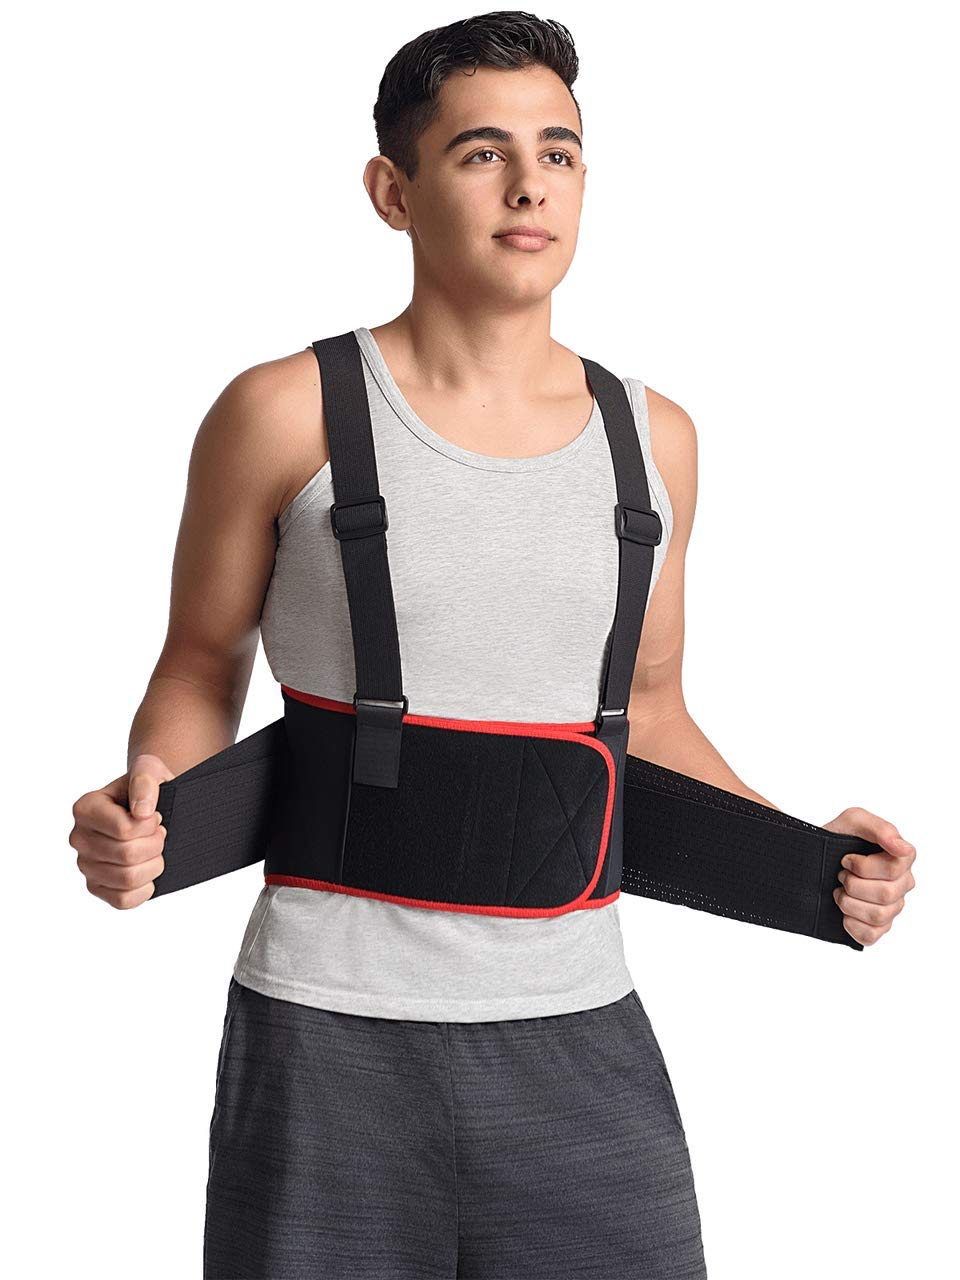 MAXAR Breathable Lower Back Support with Detachable Suspenders IBS-3000: Black Small by Maxar